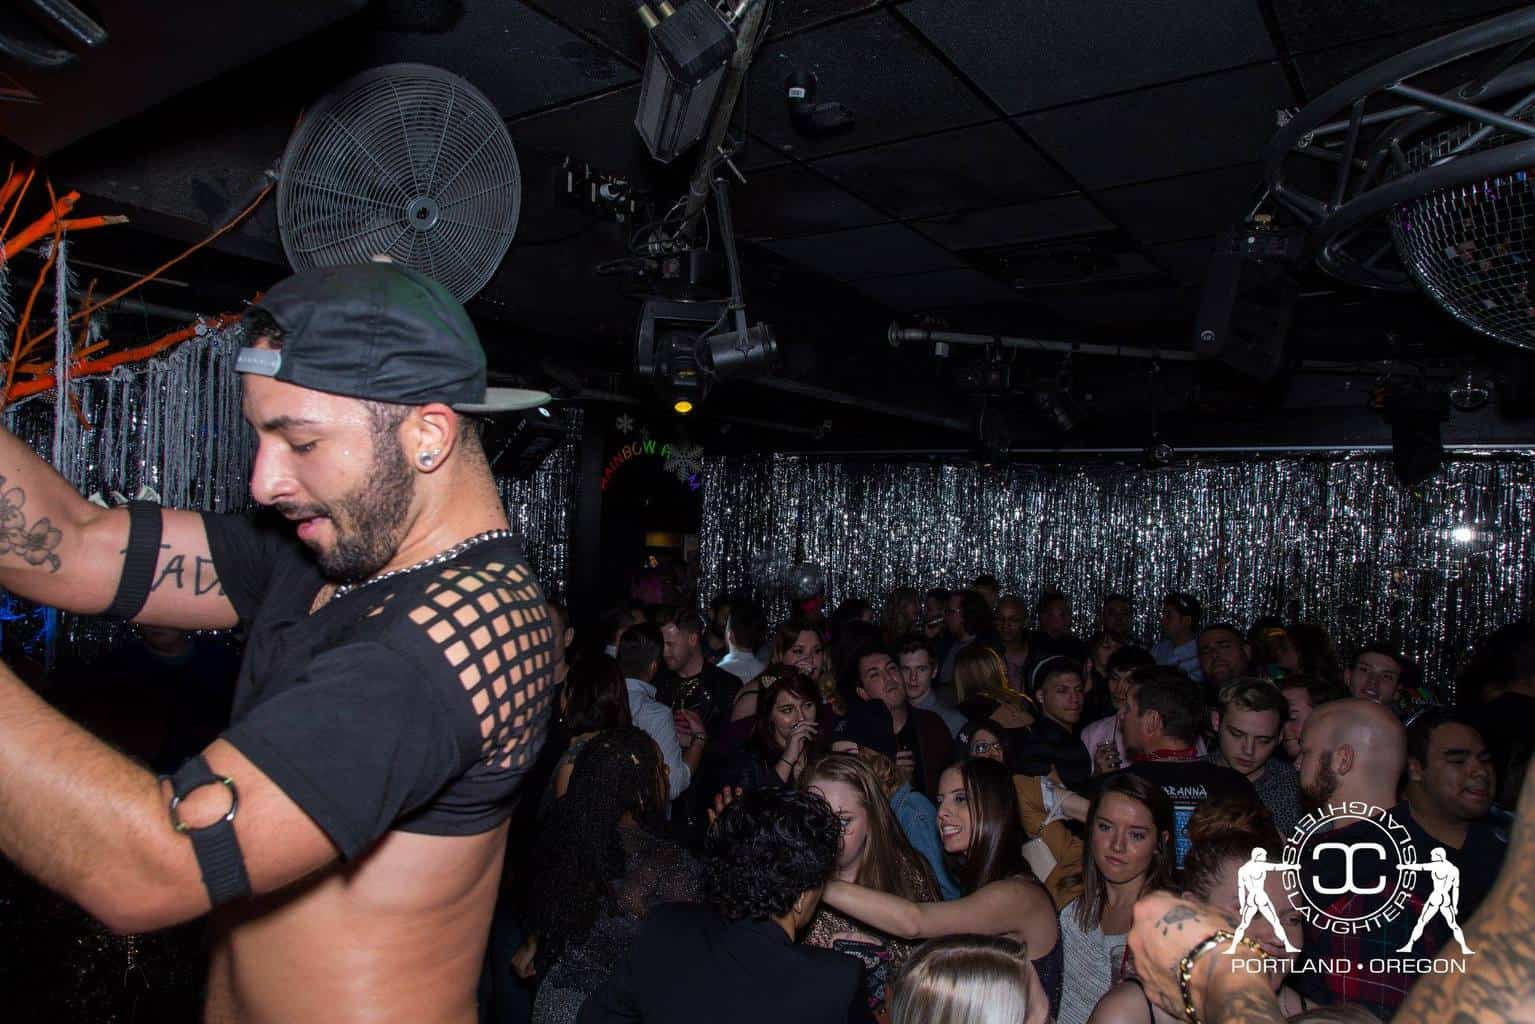 Portland Gay Dance Clubs